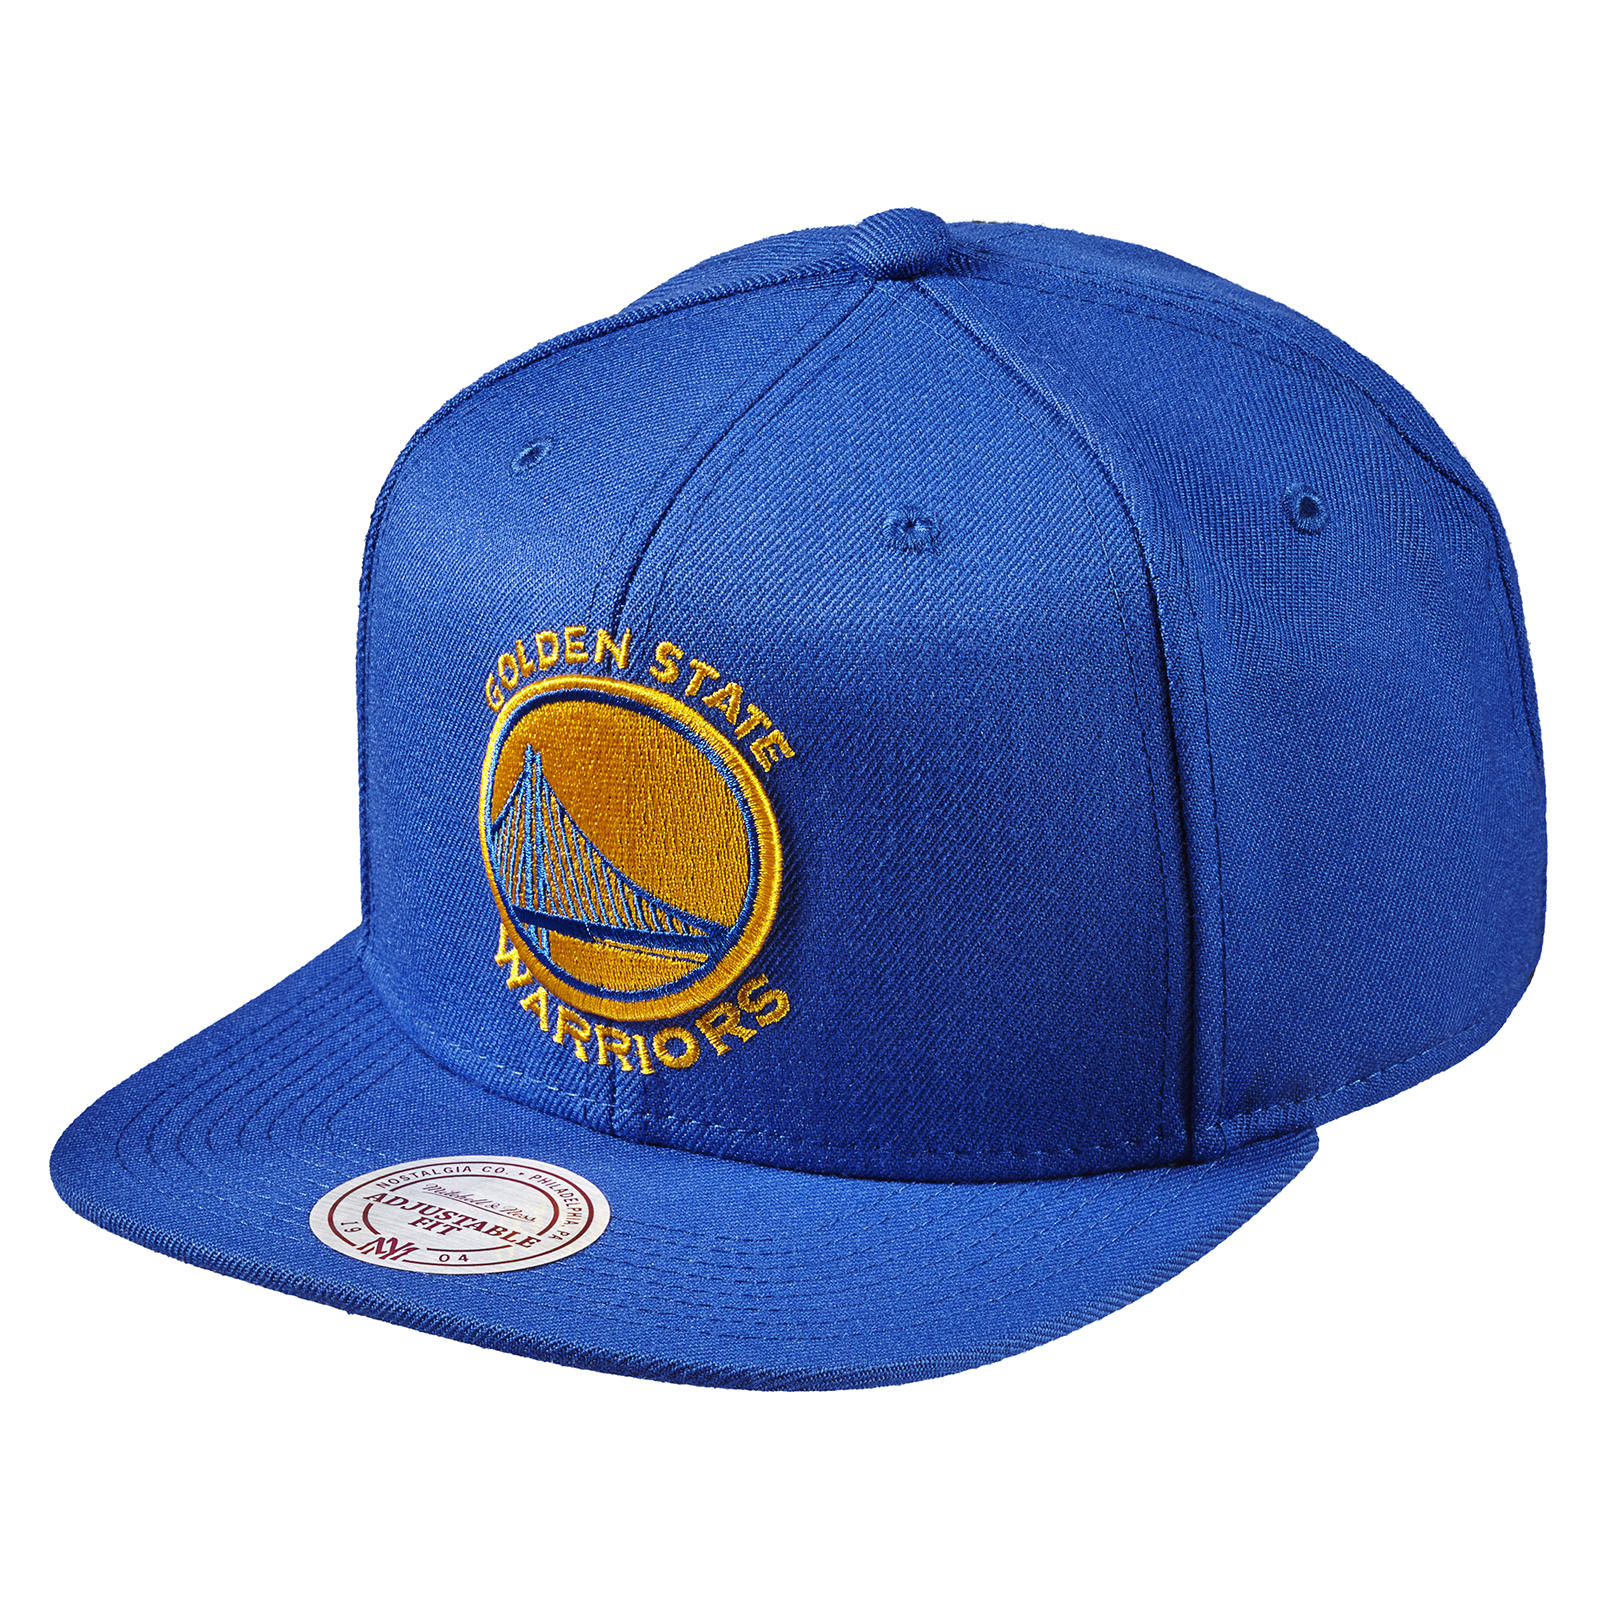 separation shoes 34582 d6f95 ... discount code for golden state warriors wool solid snapback blue f10bd  b3062